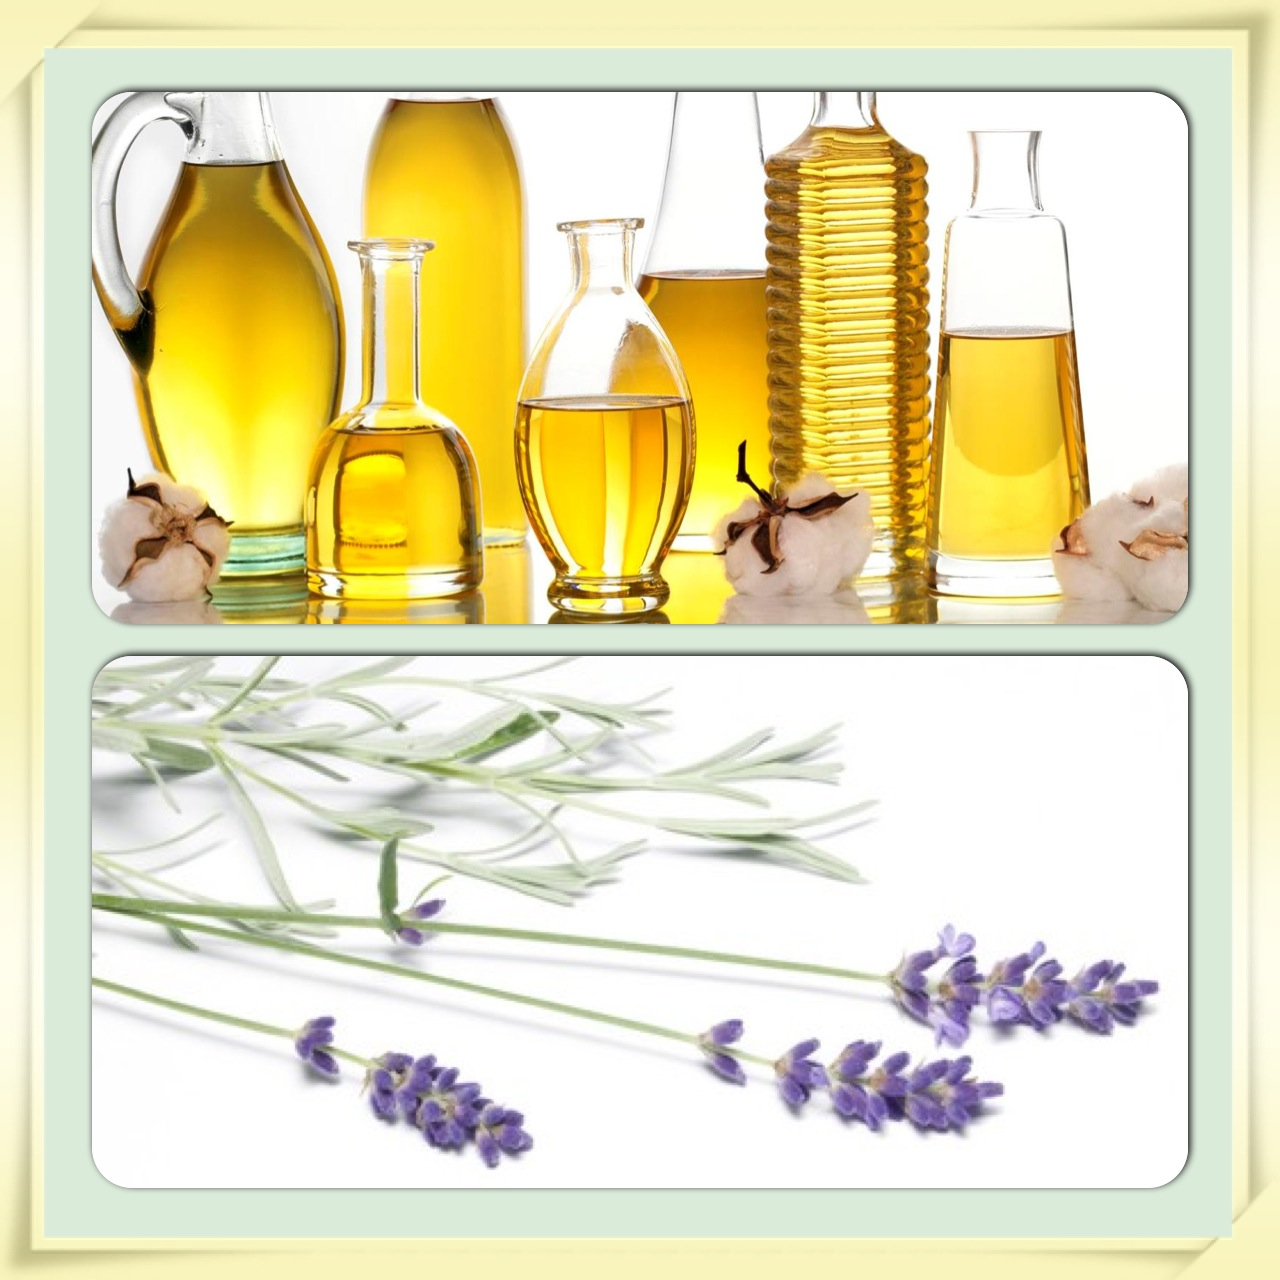 jars of oil and sprigs of lavender